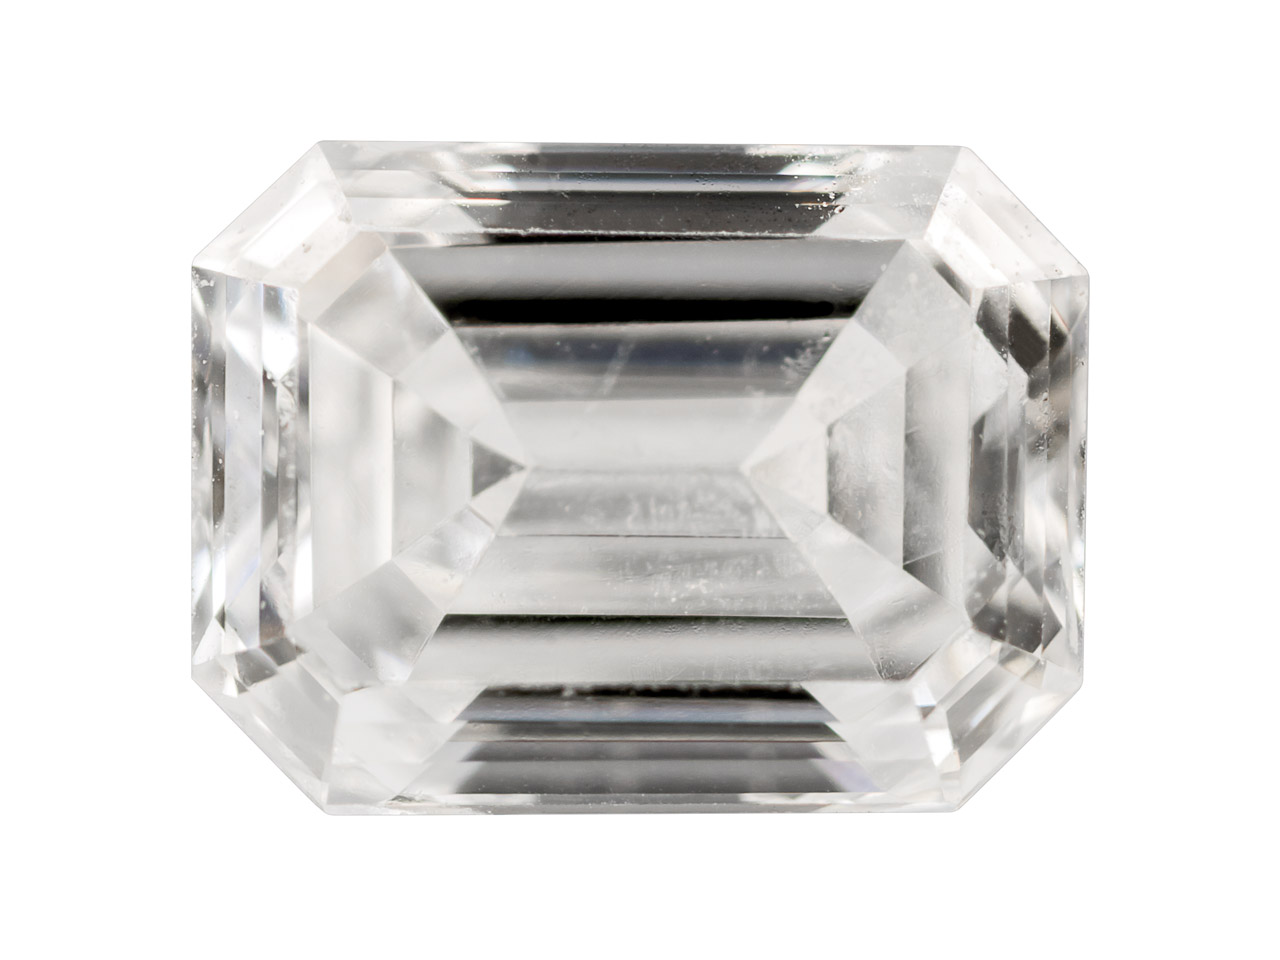 Diamond, Emerald Cut, G/vs,        15pt/4x3mm